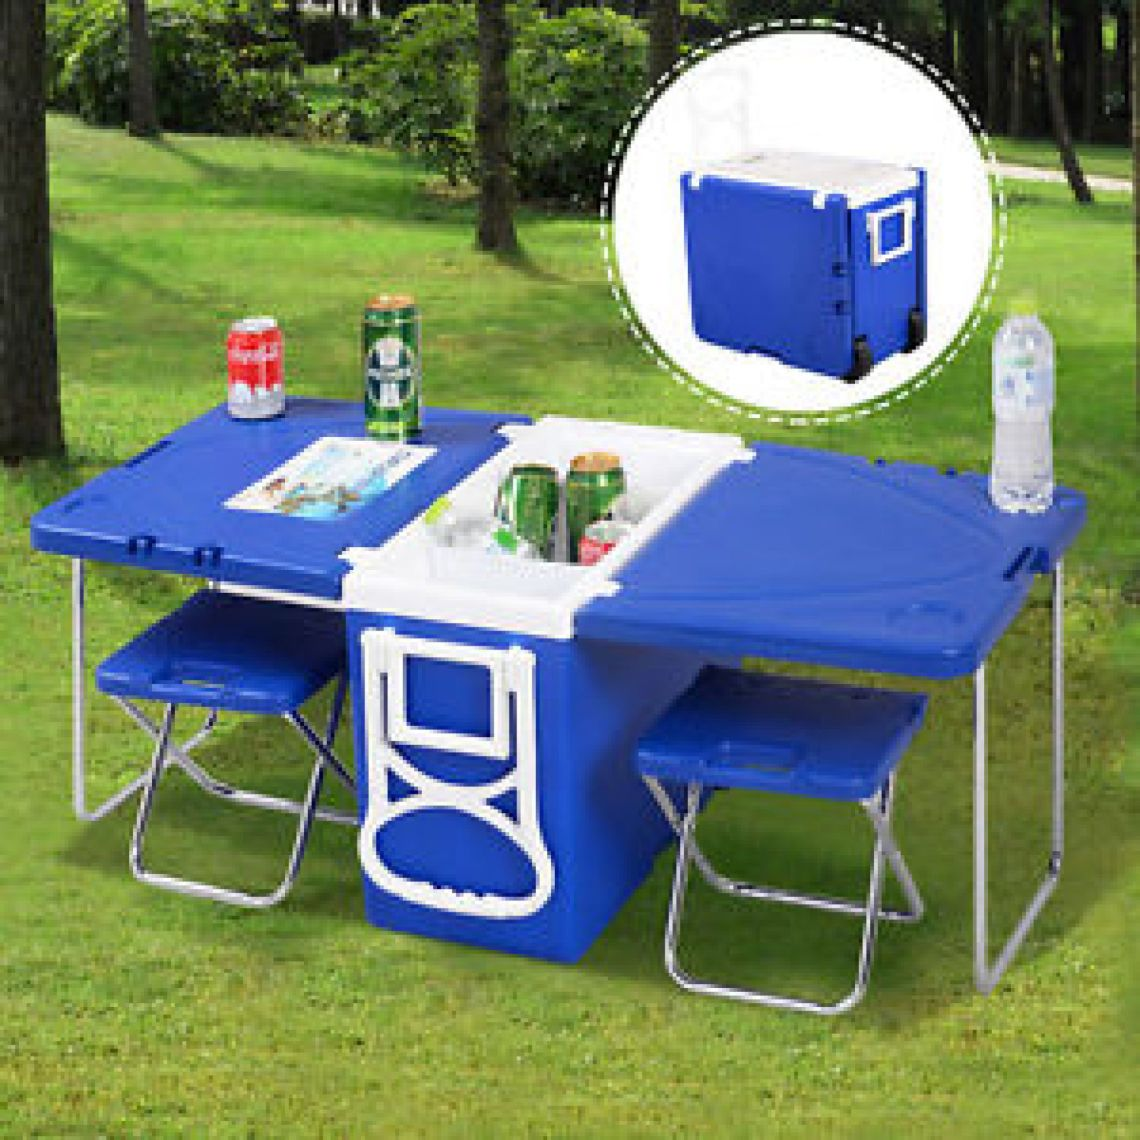 Multi Function Rolling Cooler Picnic Camping Outdoor w/ Table & 2 Chairs Blue | eBay